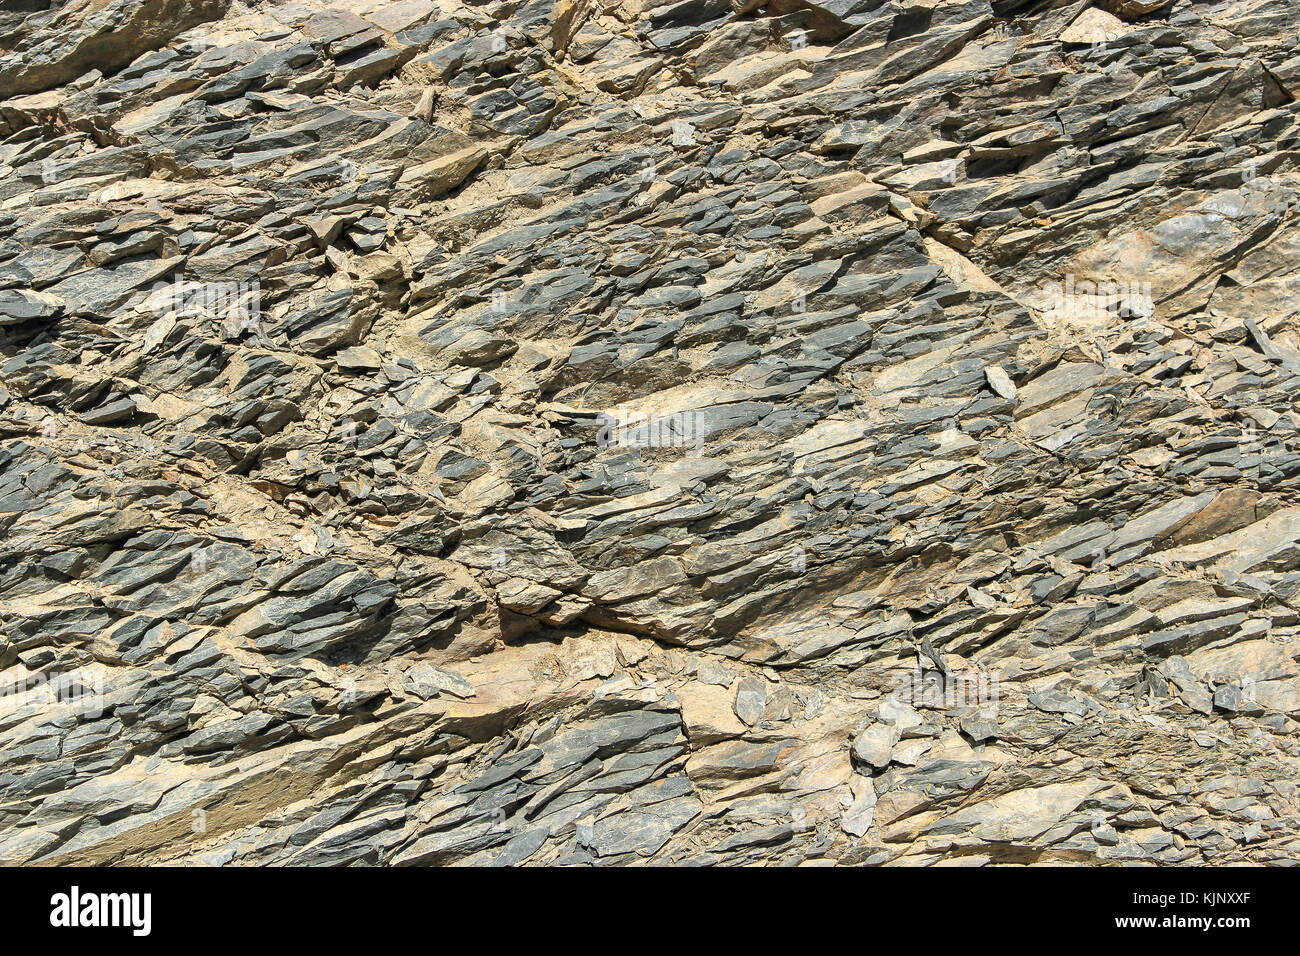 b6b39e8904ef0 Close-up of Geological Shale Rock Formation Pattern in the Picos De Europa  Spain